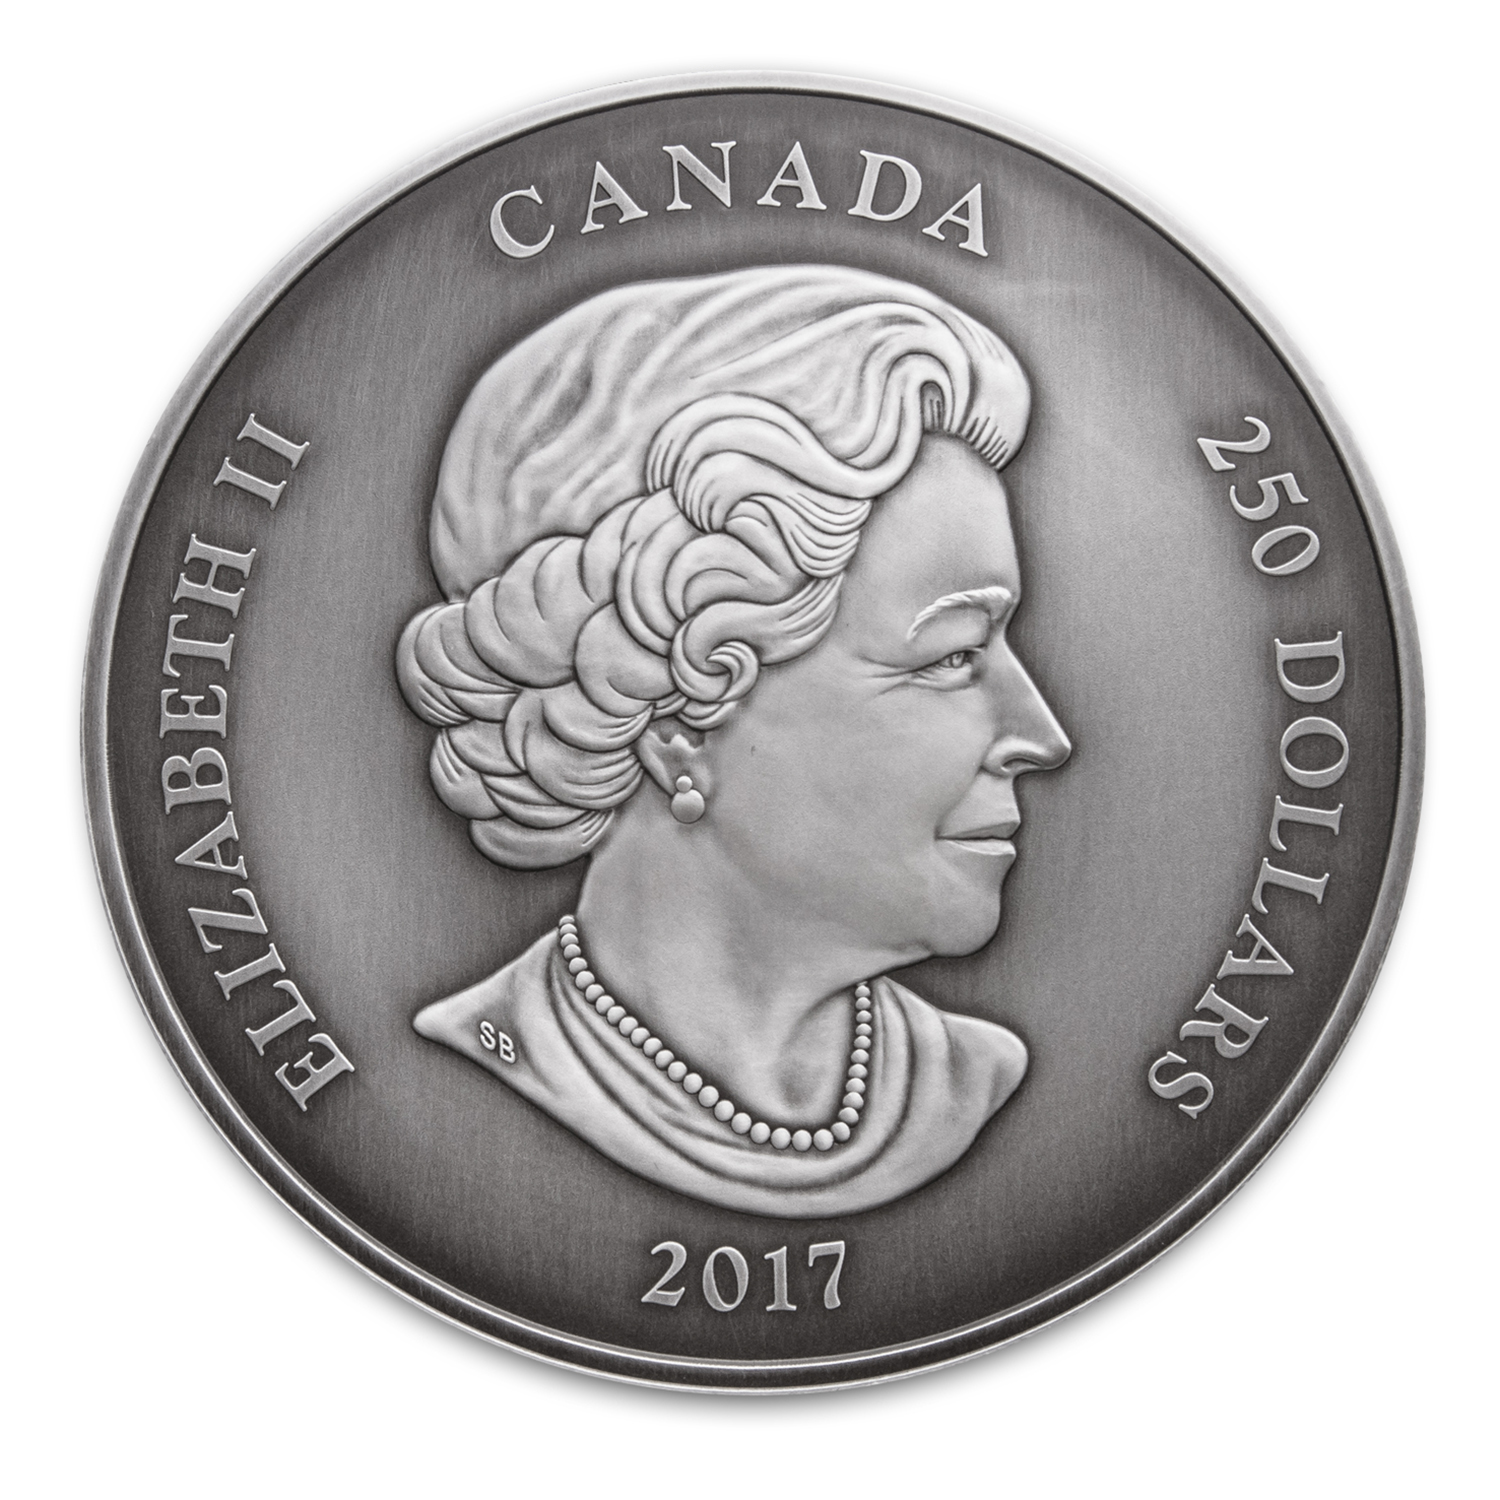 2017 Canada kilo Proof Silver $250 Canadian Coin Collection